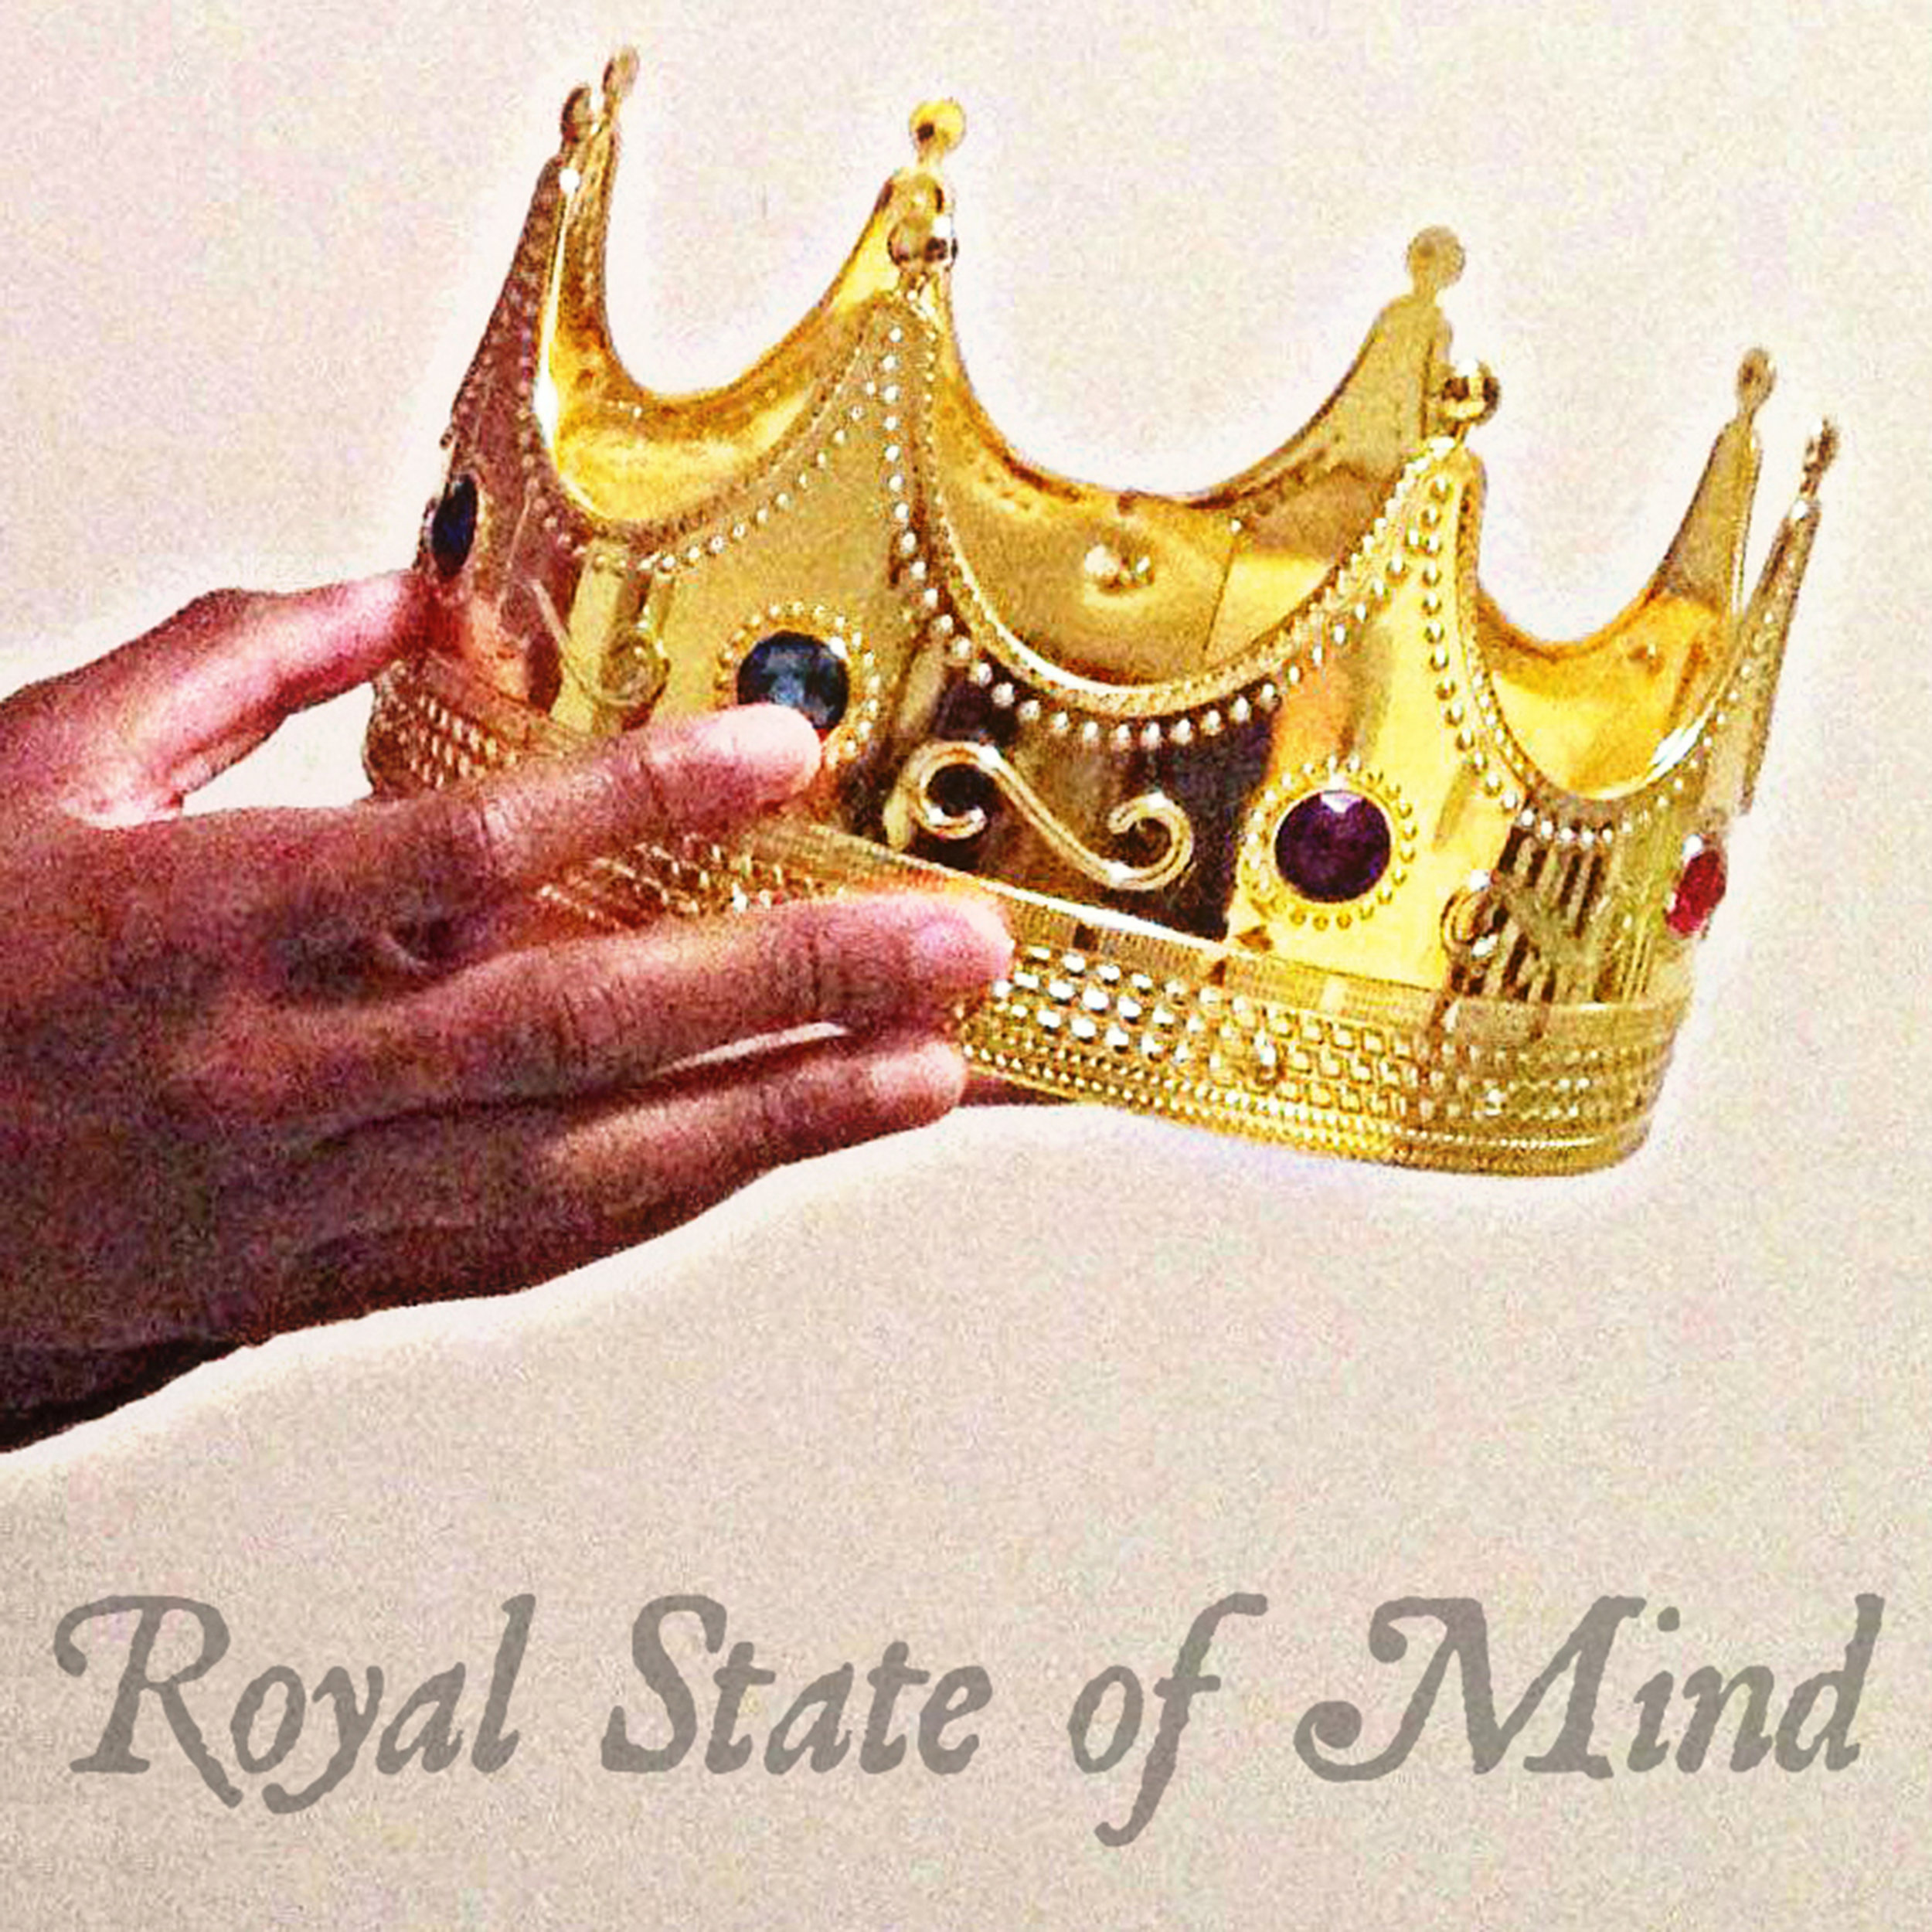 Welcome to the latest edition of the Royal State of Mind Podcast.  On today's show, I have a conversation with Berry. Last year, she formed  Podcasts in Color , a massive online directory that compiles podcasts created black, latino, and other people of color (POC). Today, she joins me to discuss her project, the role POC have in the podcasting community, and much more.  She starts with the history of Podcasts in Color and how it came about, as well the importance of its existence. We talk about the benefits of a vibrant podcasting community and how the presence Podcasts in Color has helped cultivate that environment. Berry and I also look at the reasons why the podcasting medium has rose to popularity amongst POC, how to get involved in podcasting, and more.   iTunes  -  Website